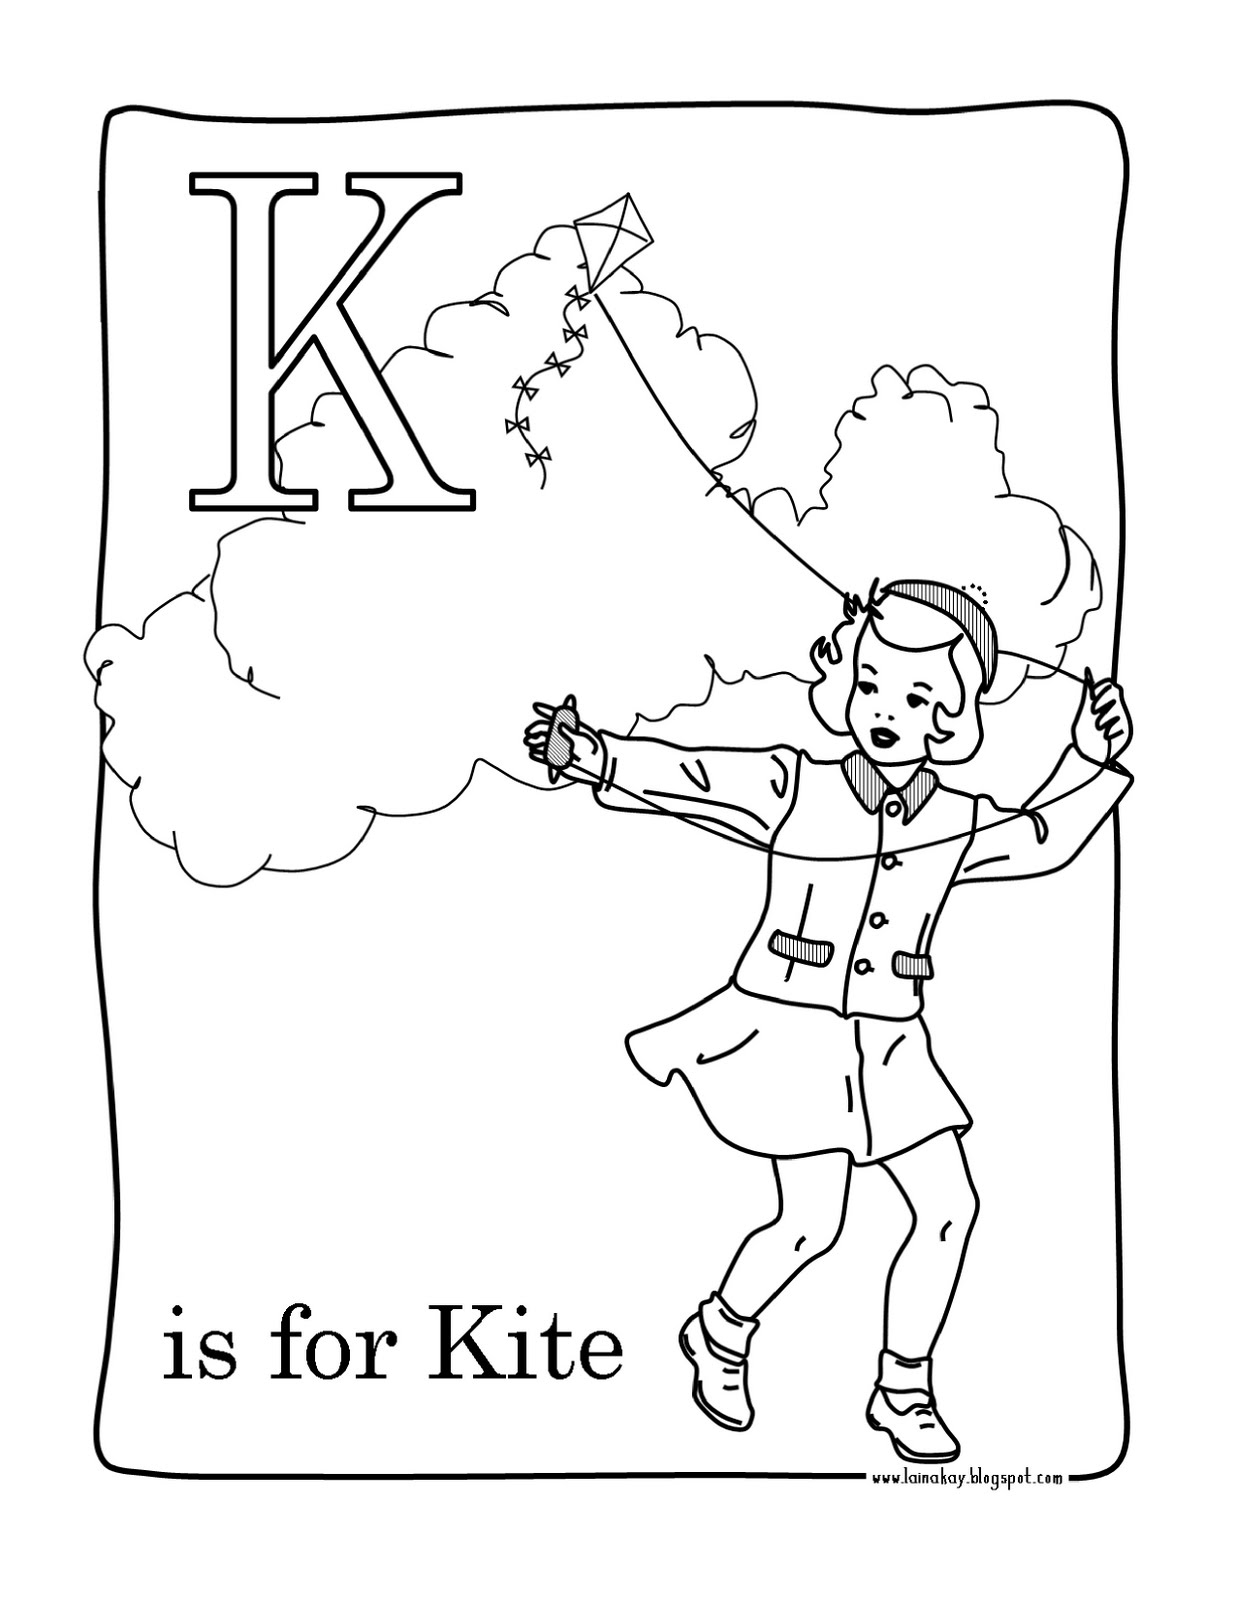 goodness gracious k is for kite